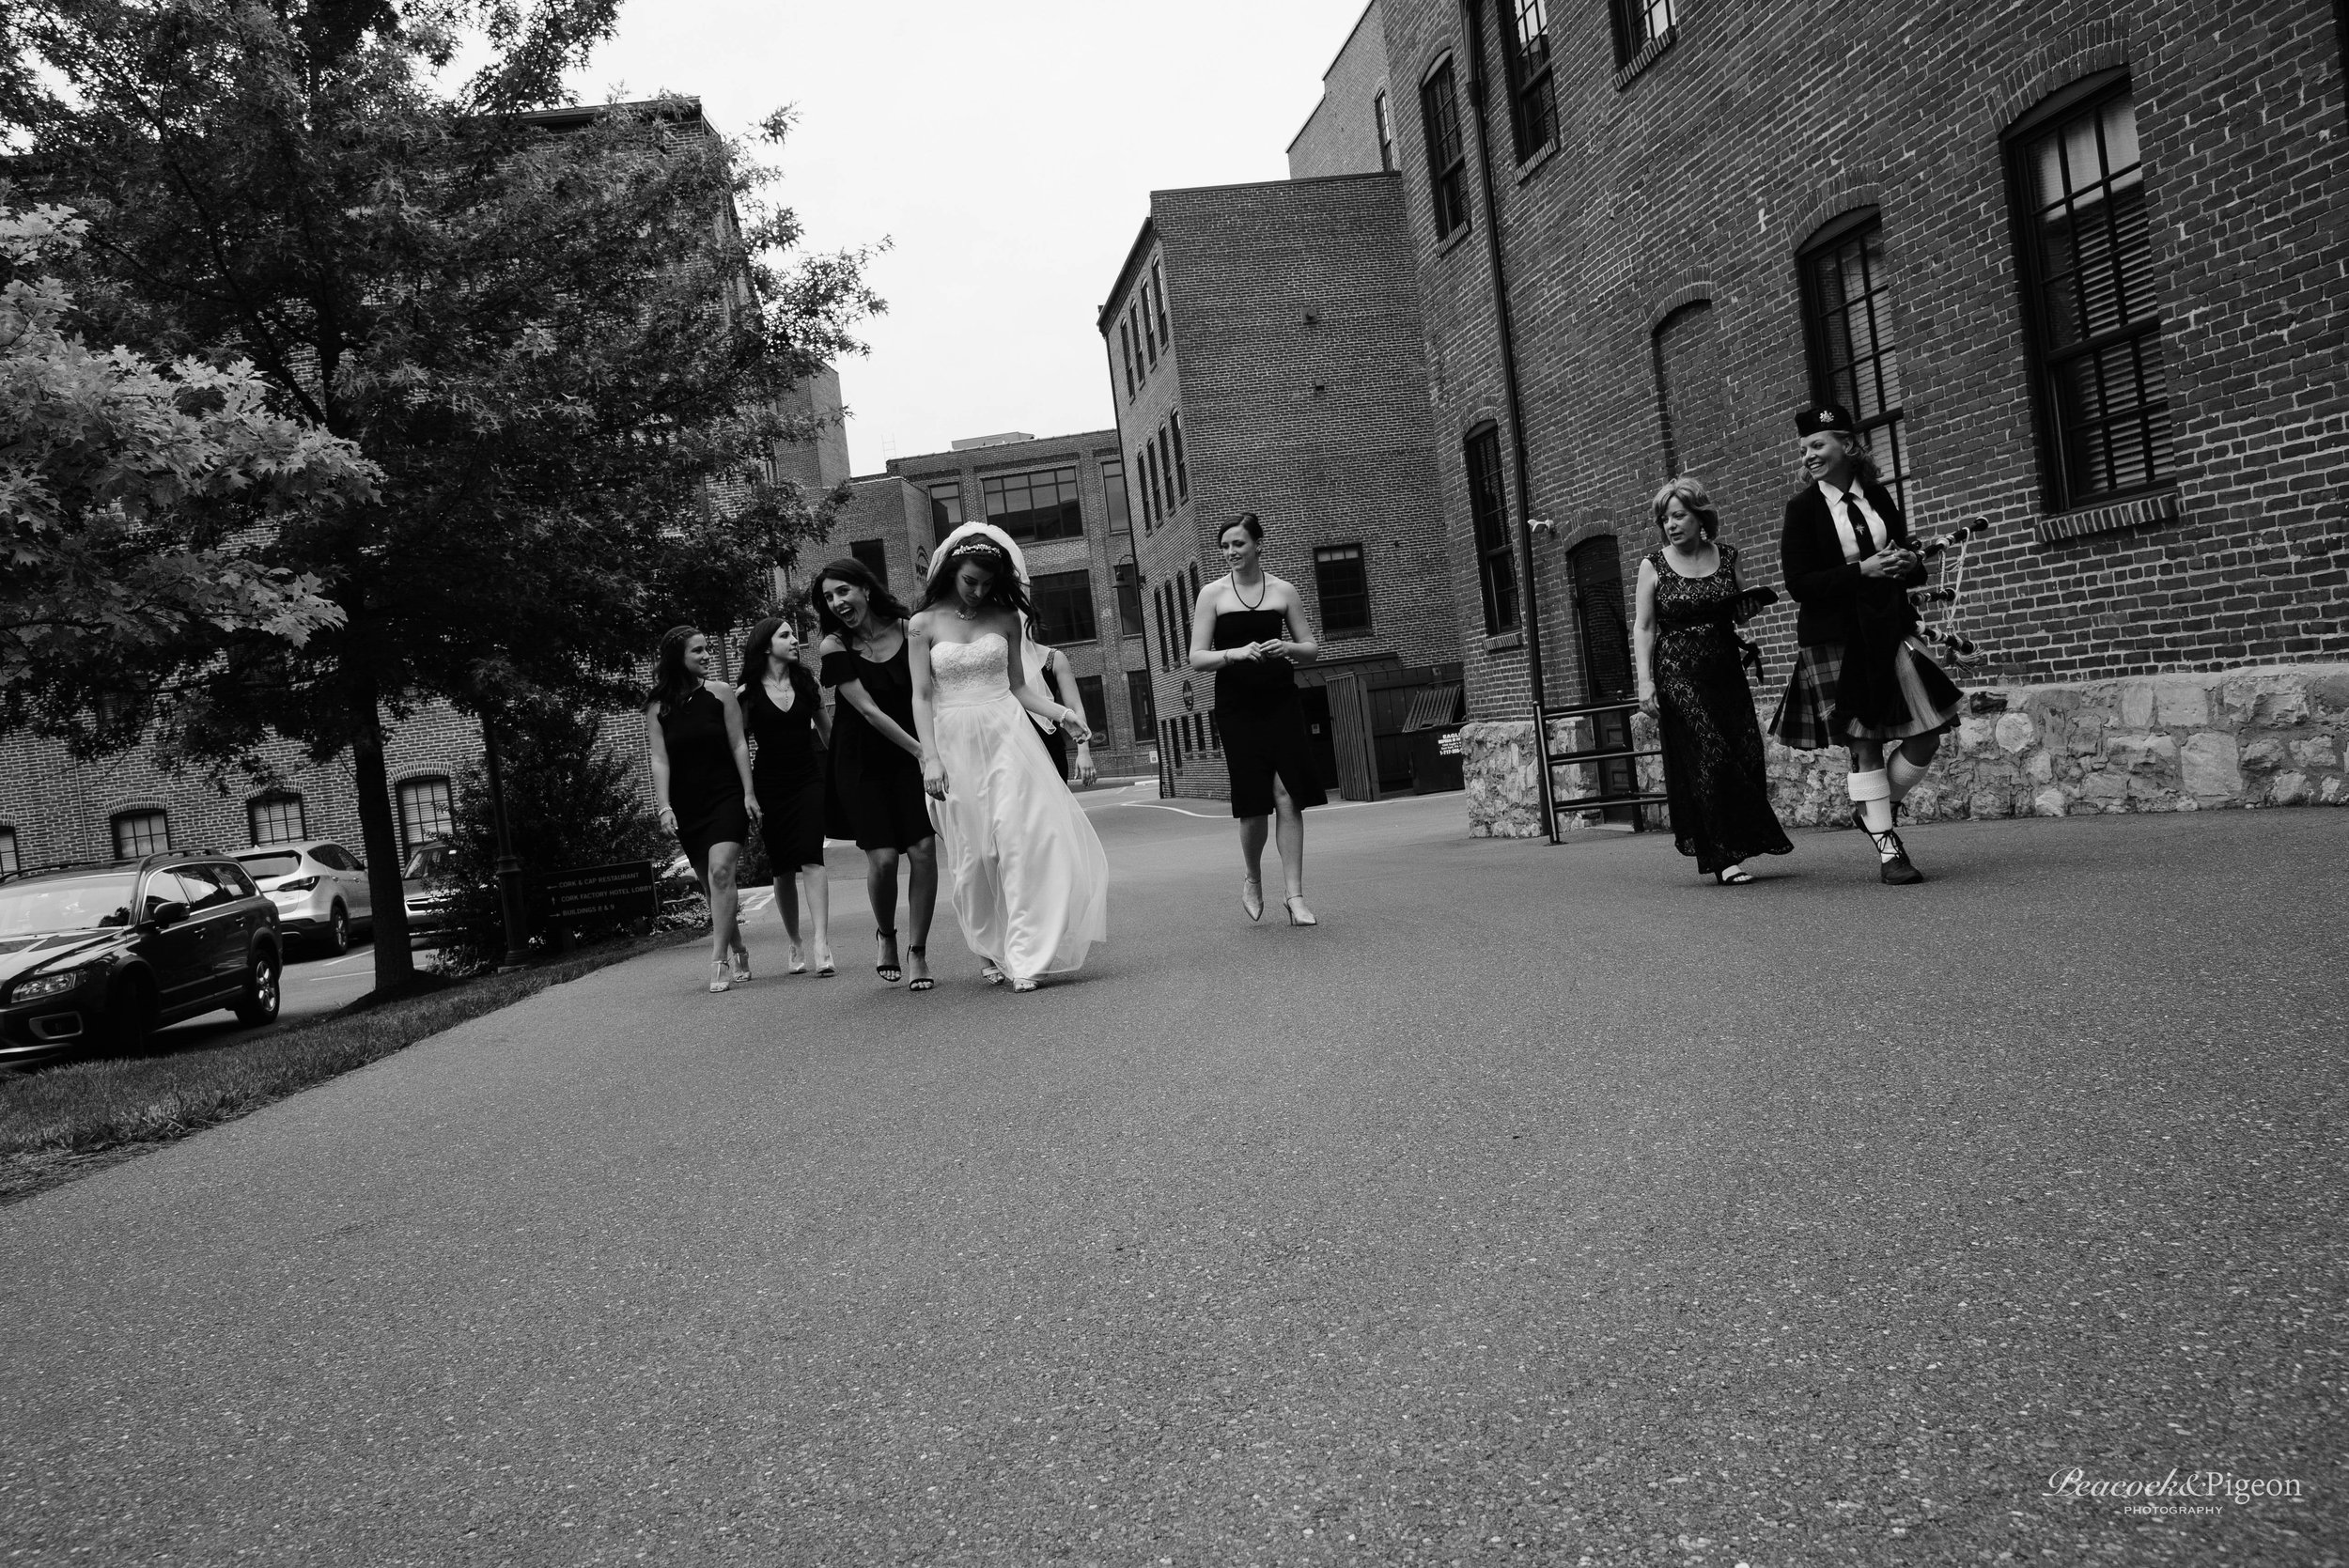 Callum_and_Sara's_Wedding_at_the_Cork_Factory_Hotel_in_Lancaster-Part_Two_The_Bride_Bridesmaids_and_Family_Black_and_White_Watermarked-45.jpg